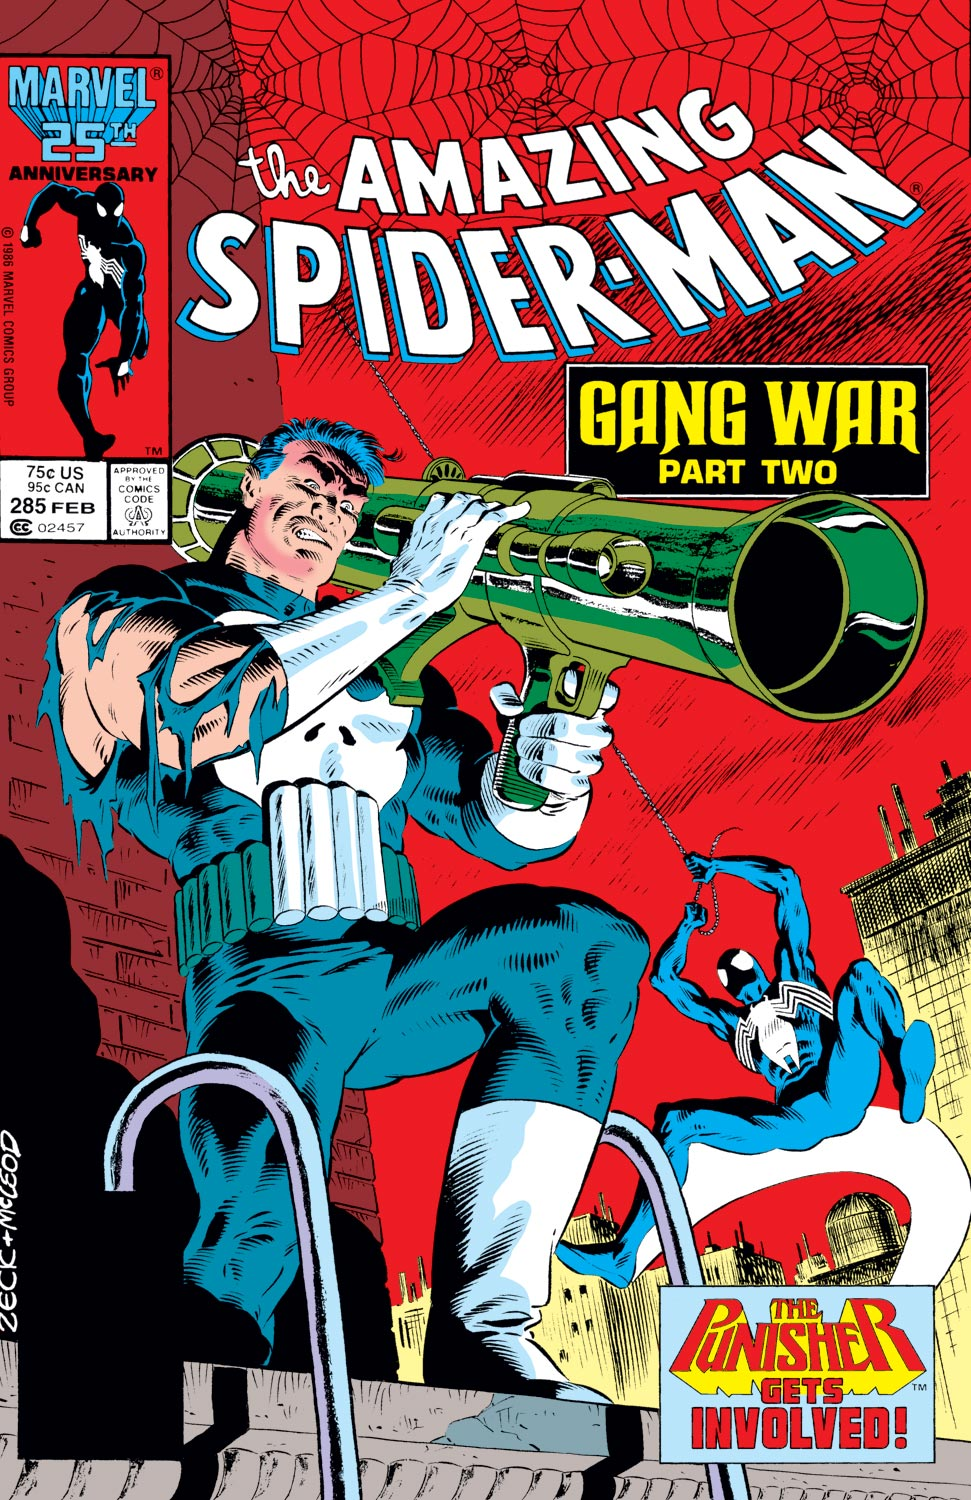 The Amazing Spider-Man (1963) #285